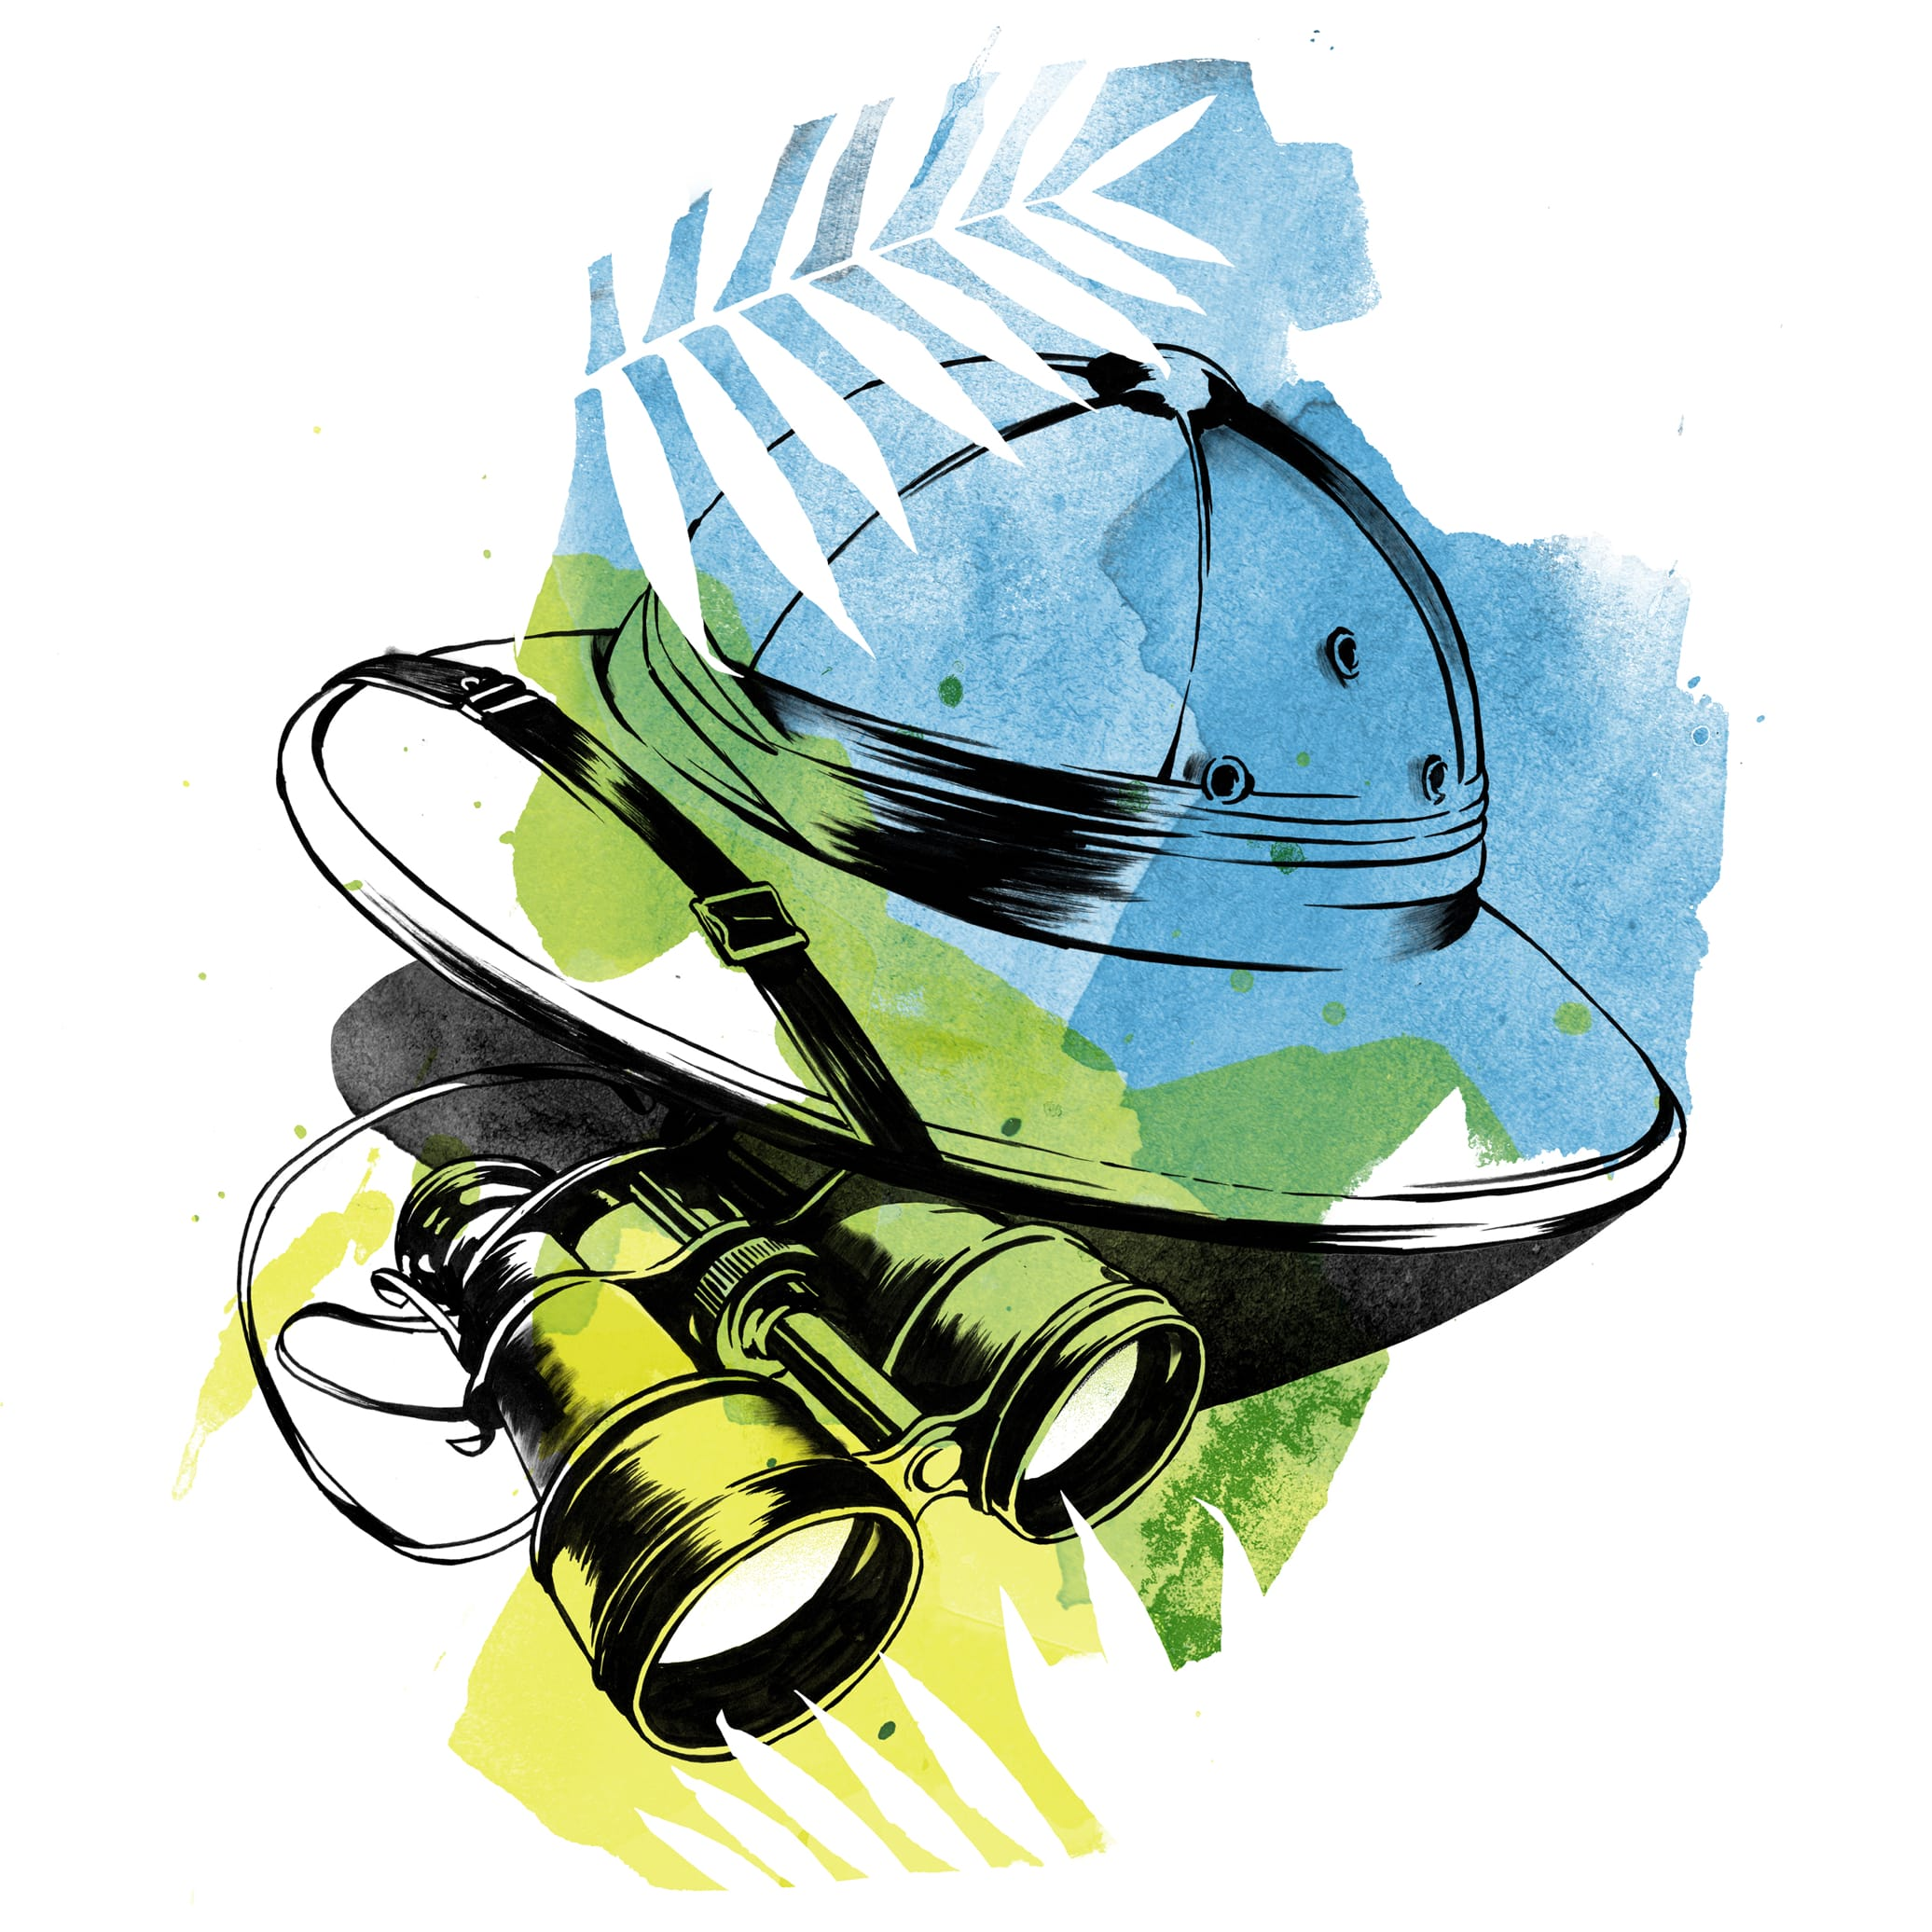 Watercolor illustration of an explorer's hat and binoculars. According to Regé-Jean, acting is an adventure, but with fewer spiders.